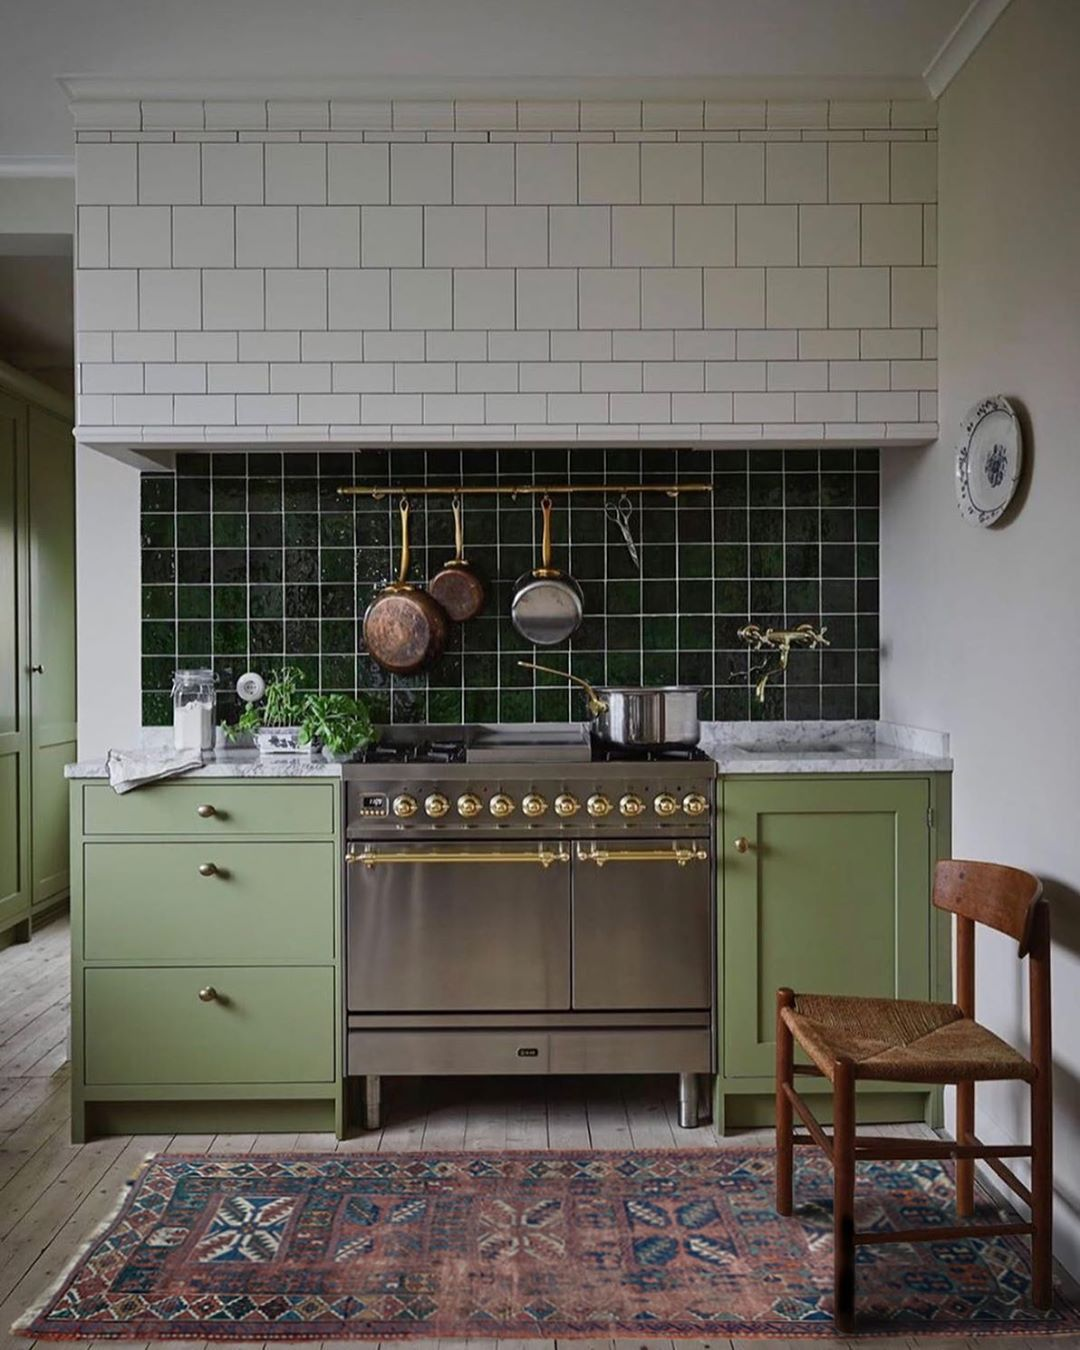 Frances Loom On Instagram New Rugs Are Live Guys I Ve Popped Ramsey Into This Beautiful Kitchen By Country Chic Kitchen Kitchen Inspirations Home Kitchens